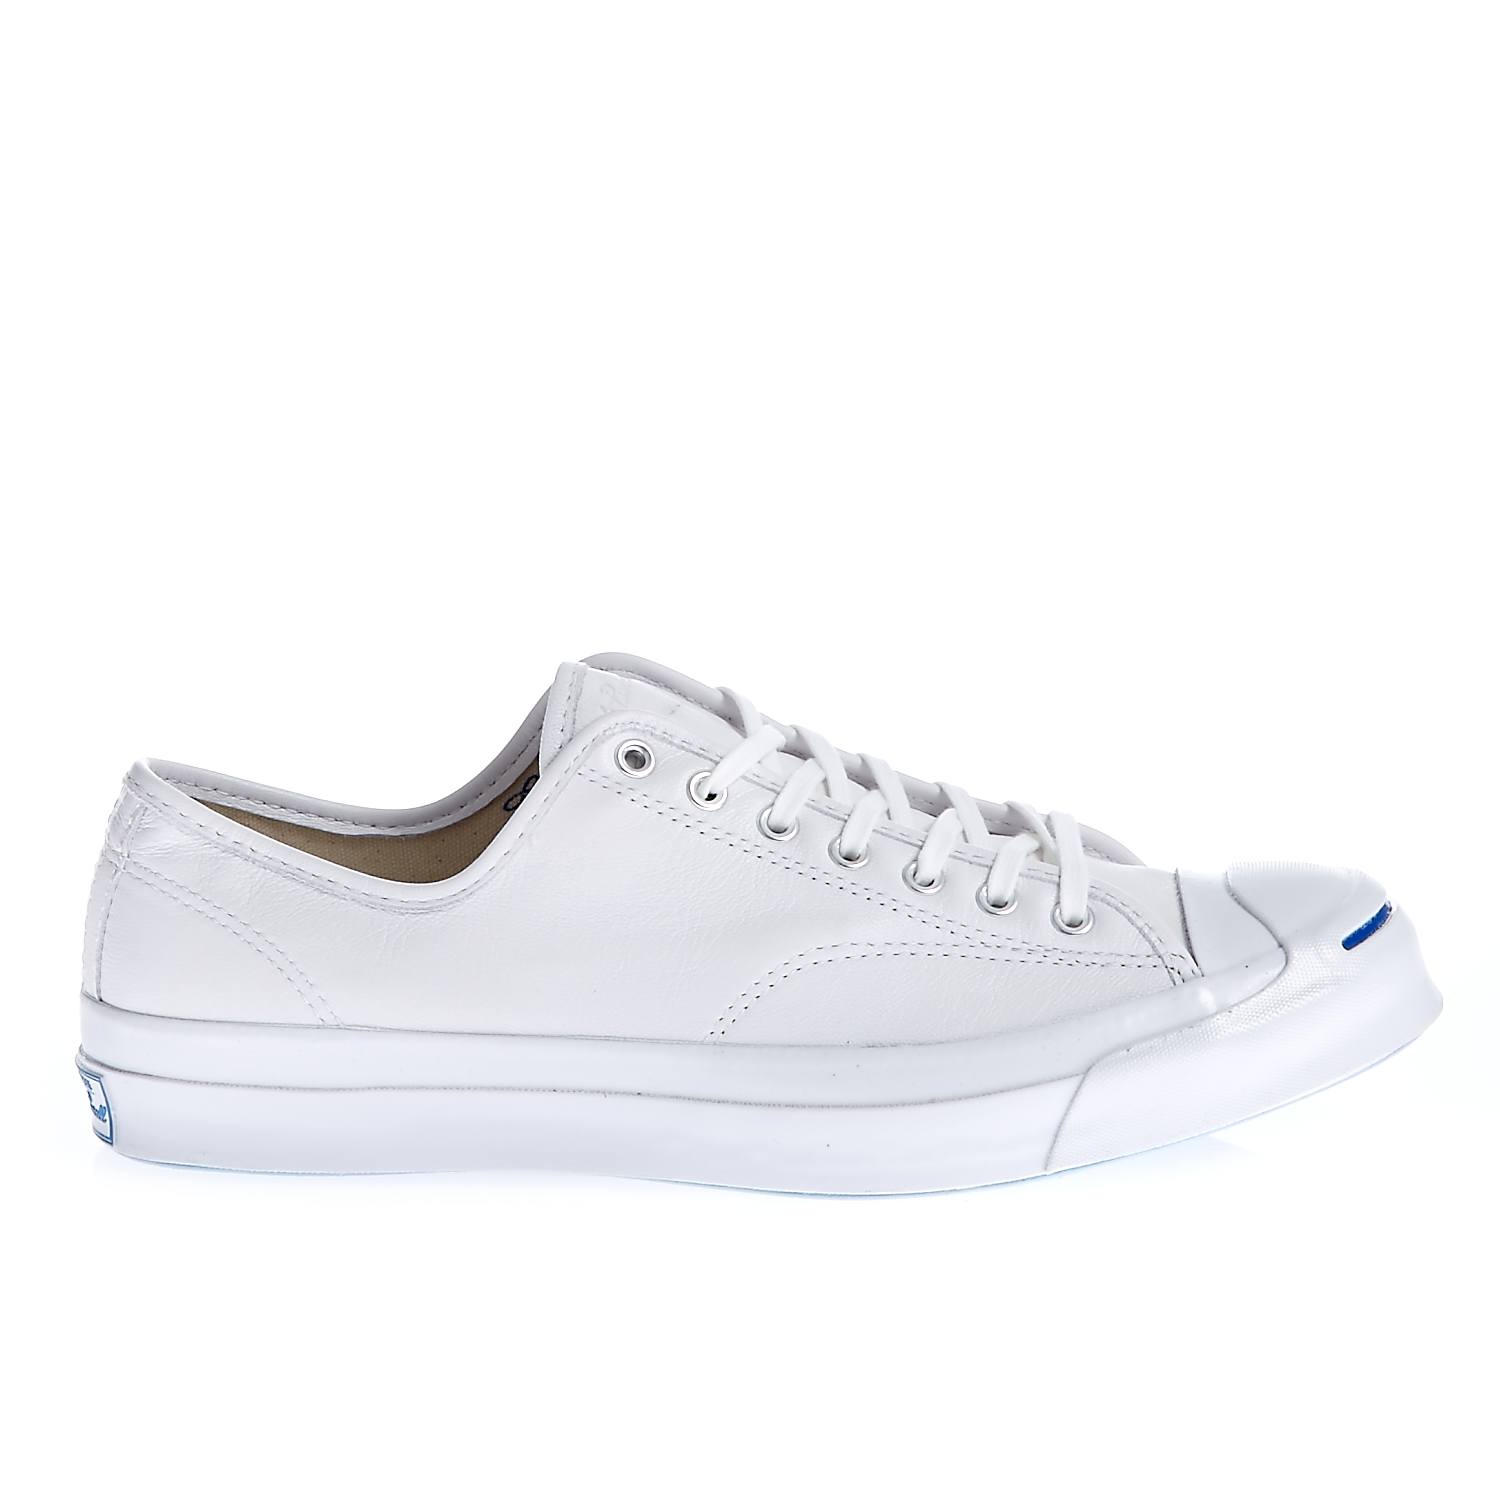 CONVERSE – Ανδρικά παπούτσια Jack Purcell Signature Ox λευκά